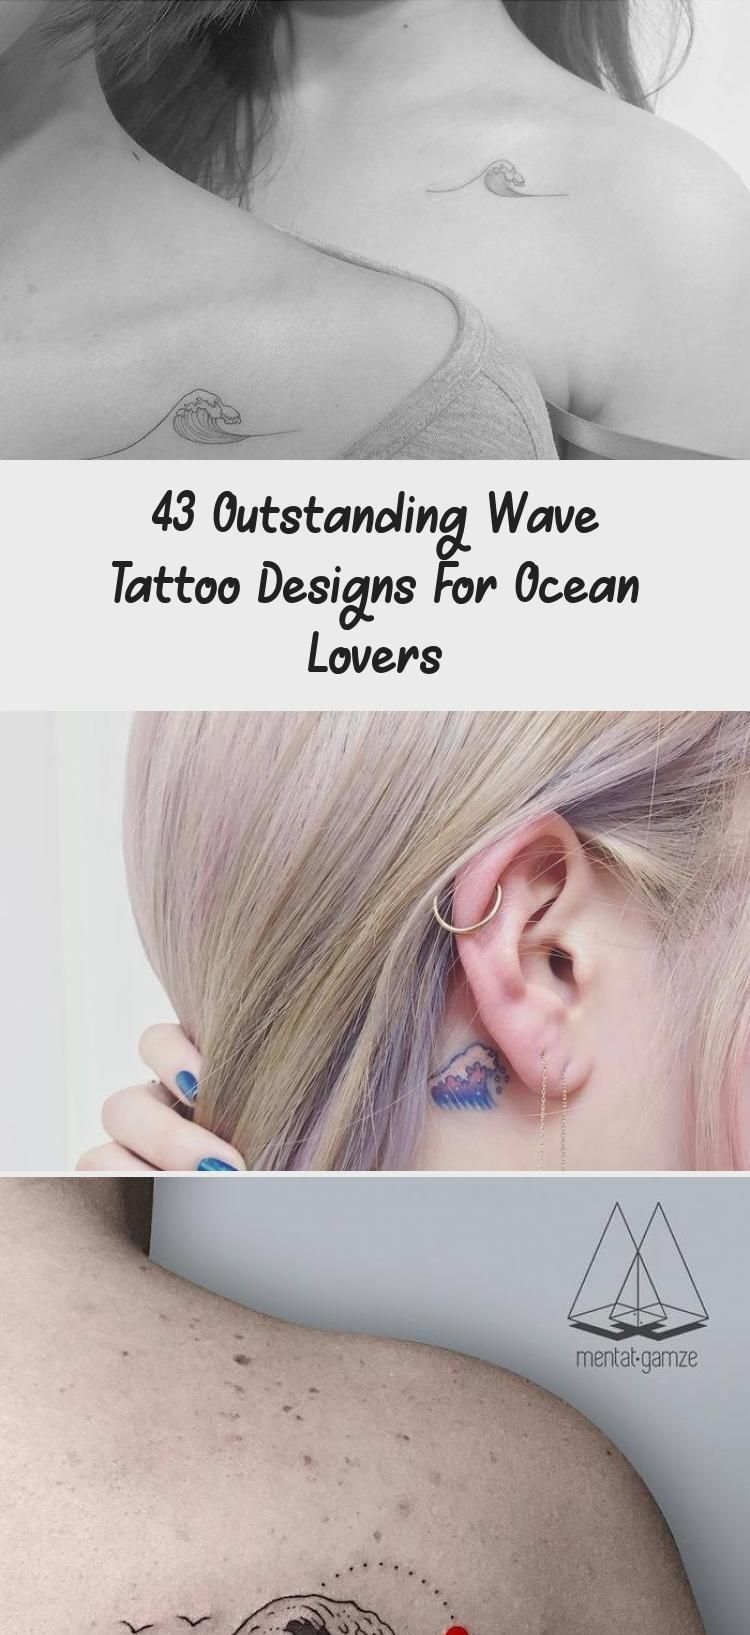 43 Outstanding Wave Tattoo Designs For Ocean Lovers – Tattoos –  Little Wave Tattoo on Ankle by victoriascarlet93 #estimular #TattoosandBodyArtPerspec…